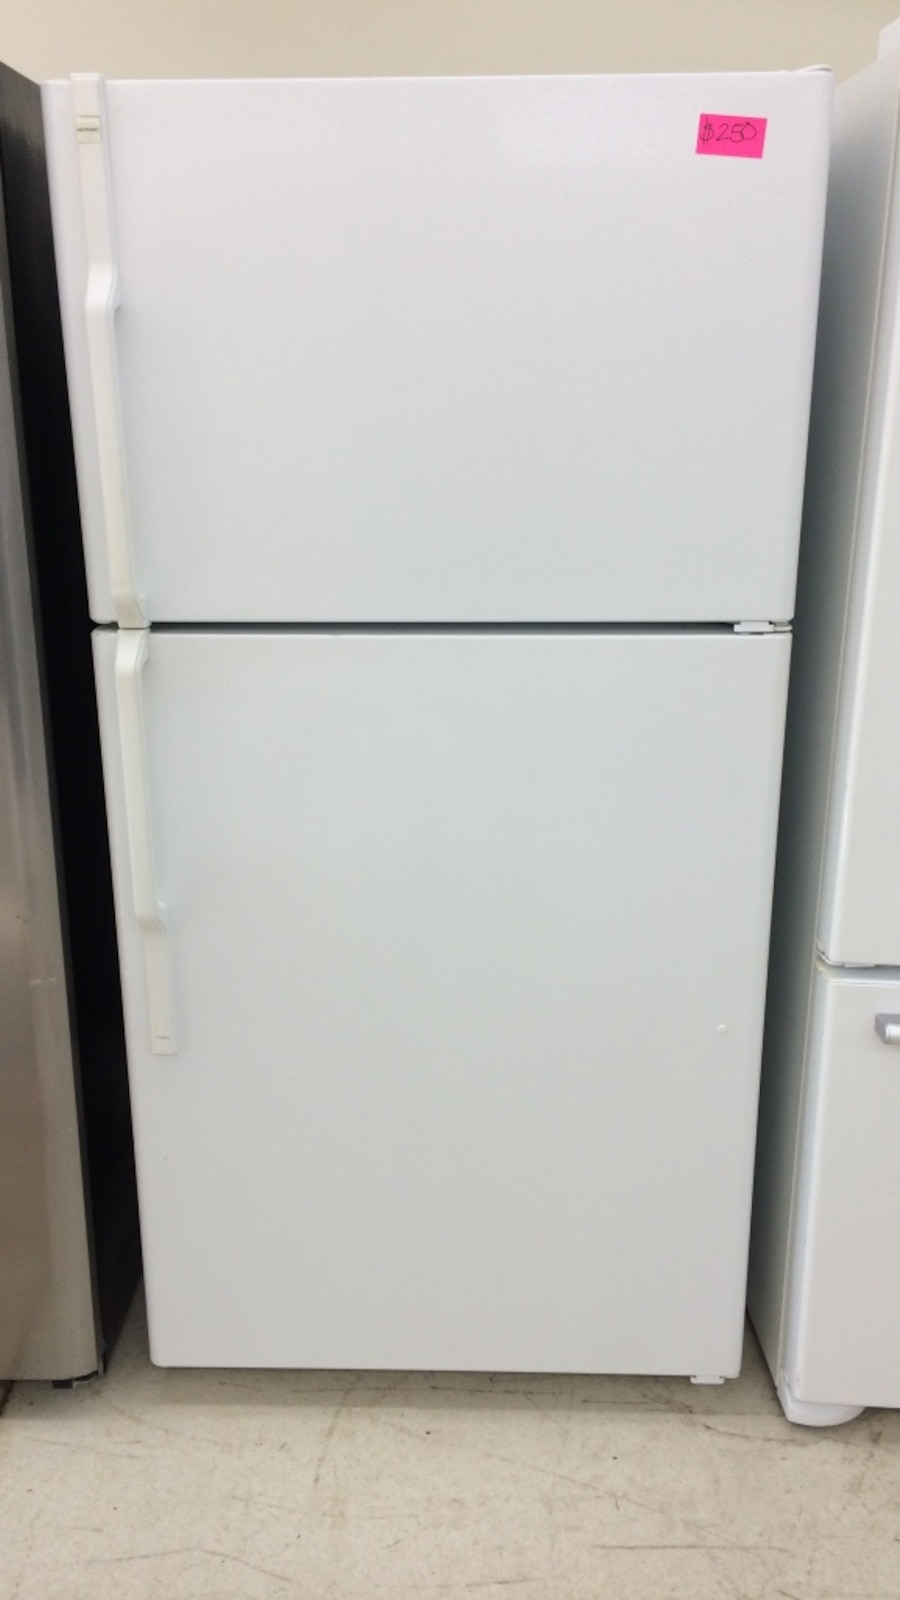 Used 33x69 Hotpoint White Top And Bottom Refrigerator In